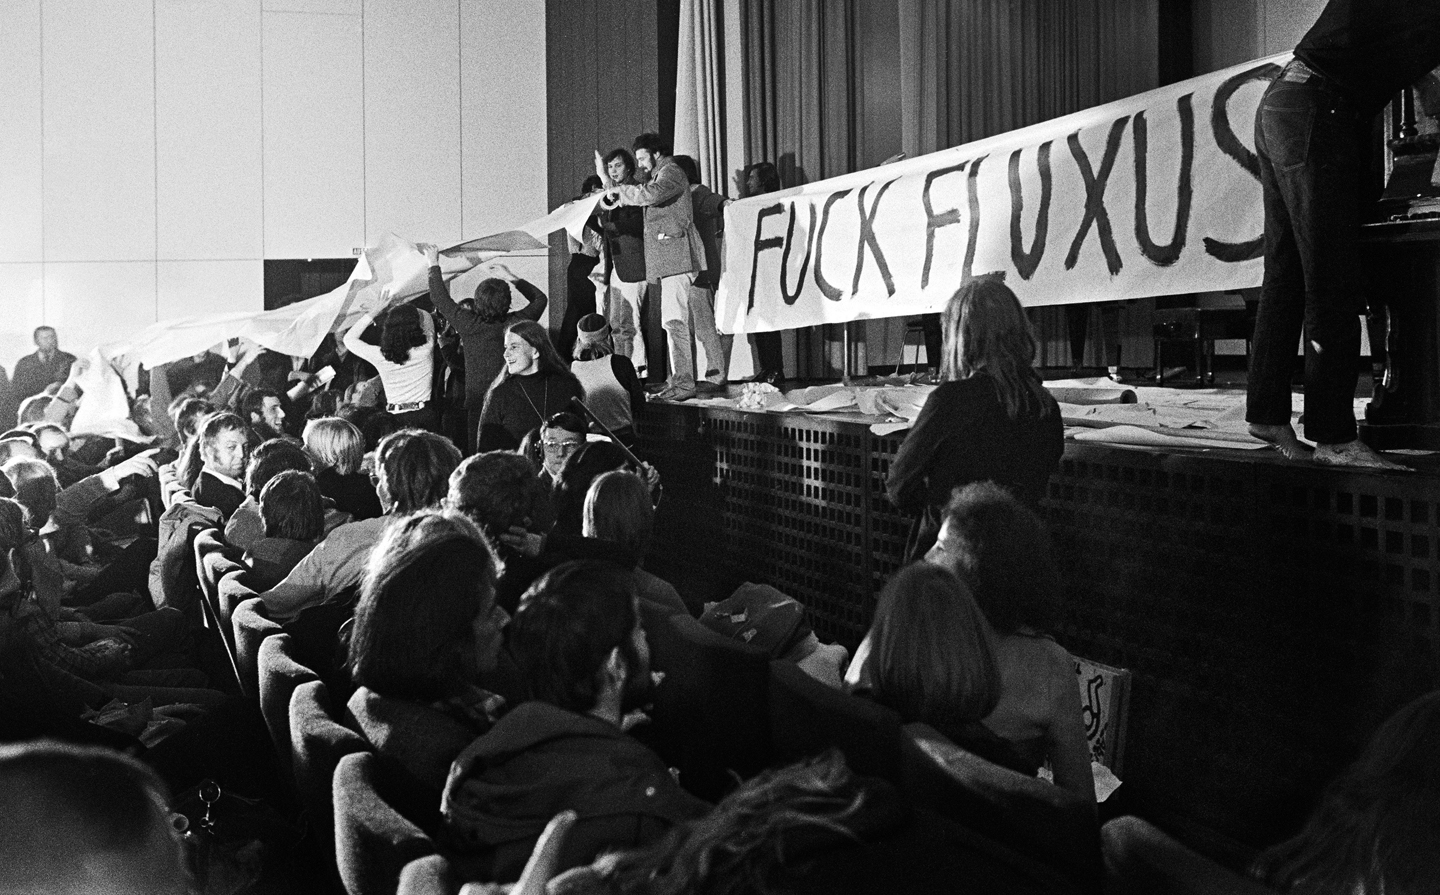 Fluxus concert on the occasion of the exhibition Happening & Fluxus, on the left next to the banderole Harald Szeemann, Cologne Kunstverein, 1970. Photo: Ad Petersen